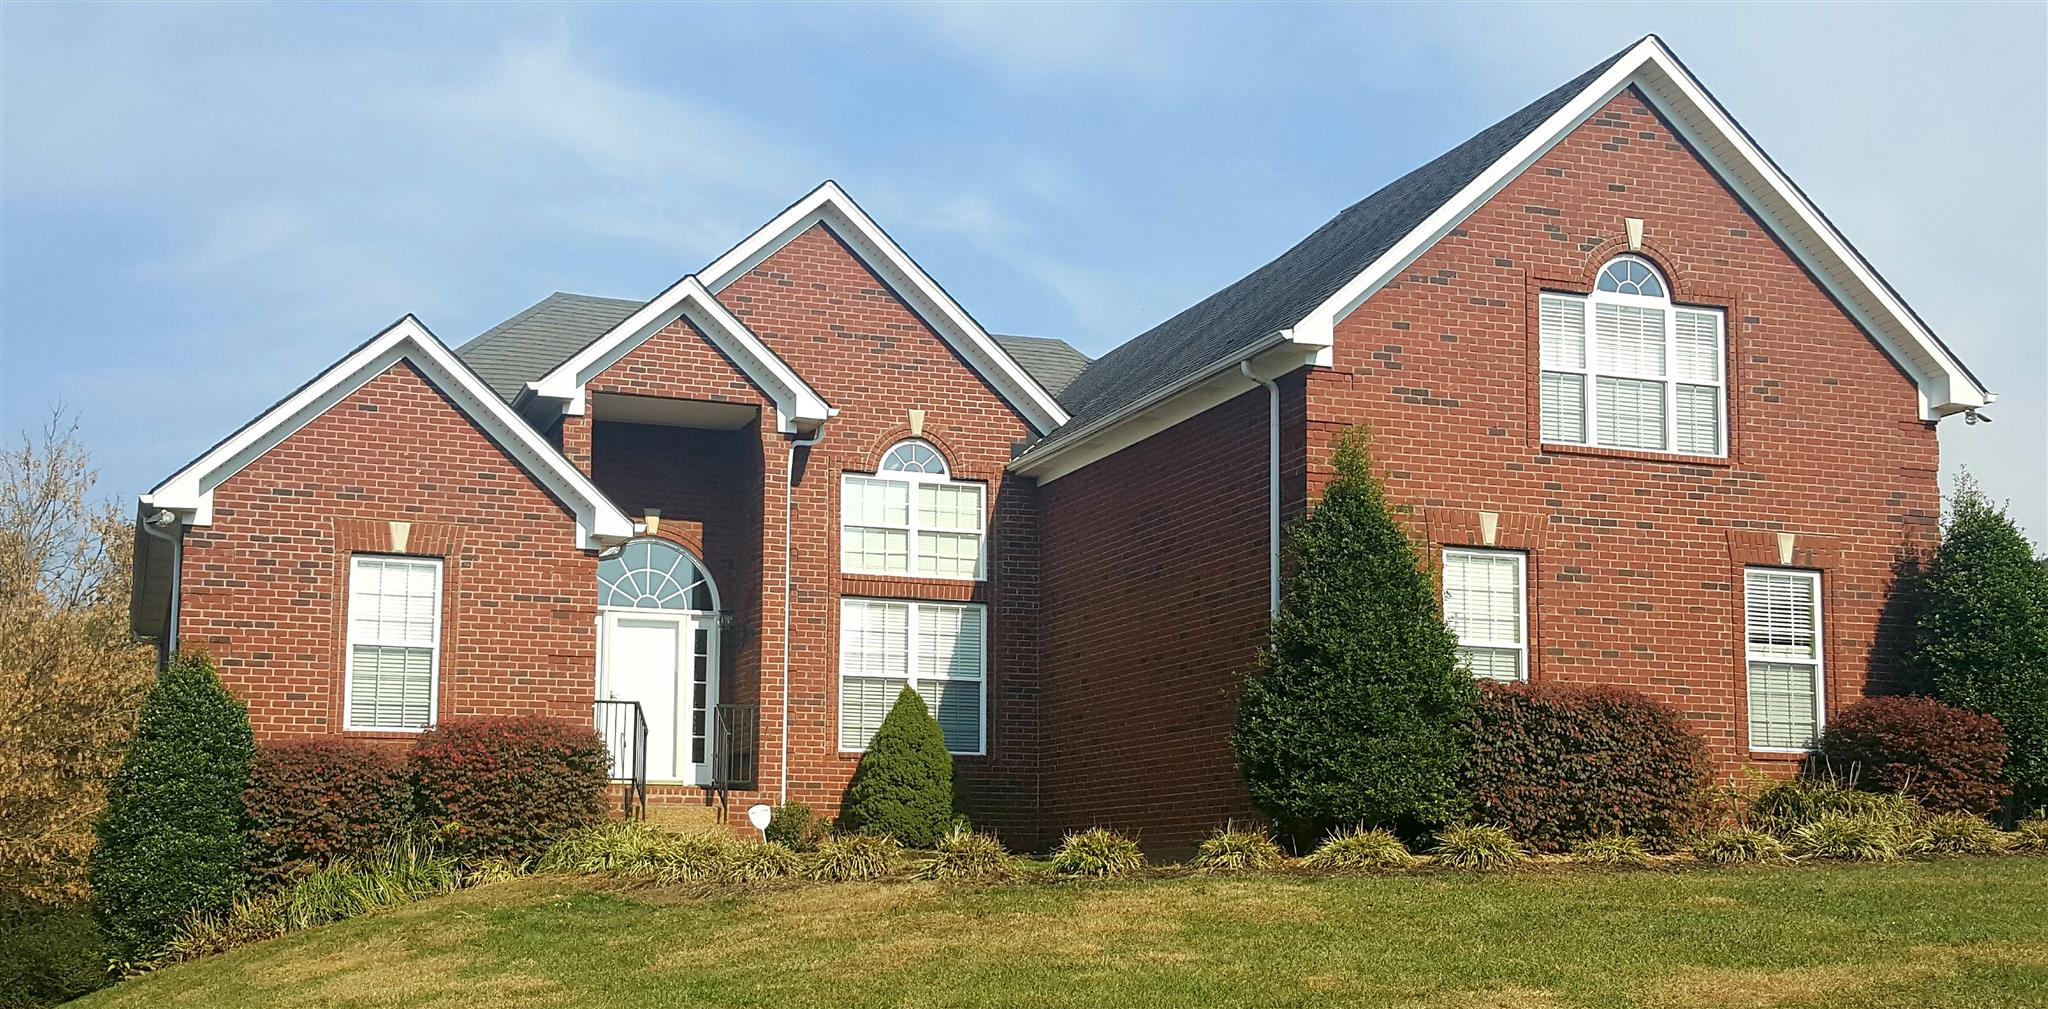 Photo of 129 N Wynridge Way  Goodlettsville  TN